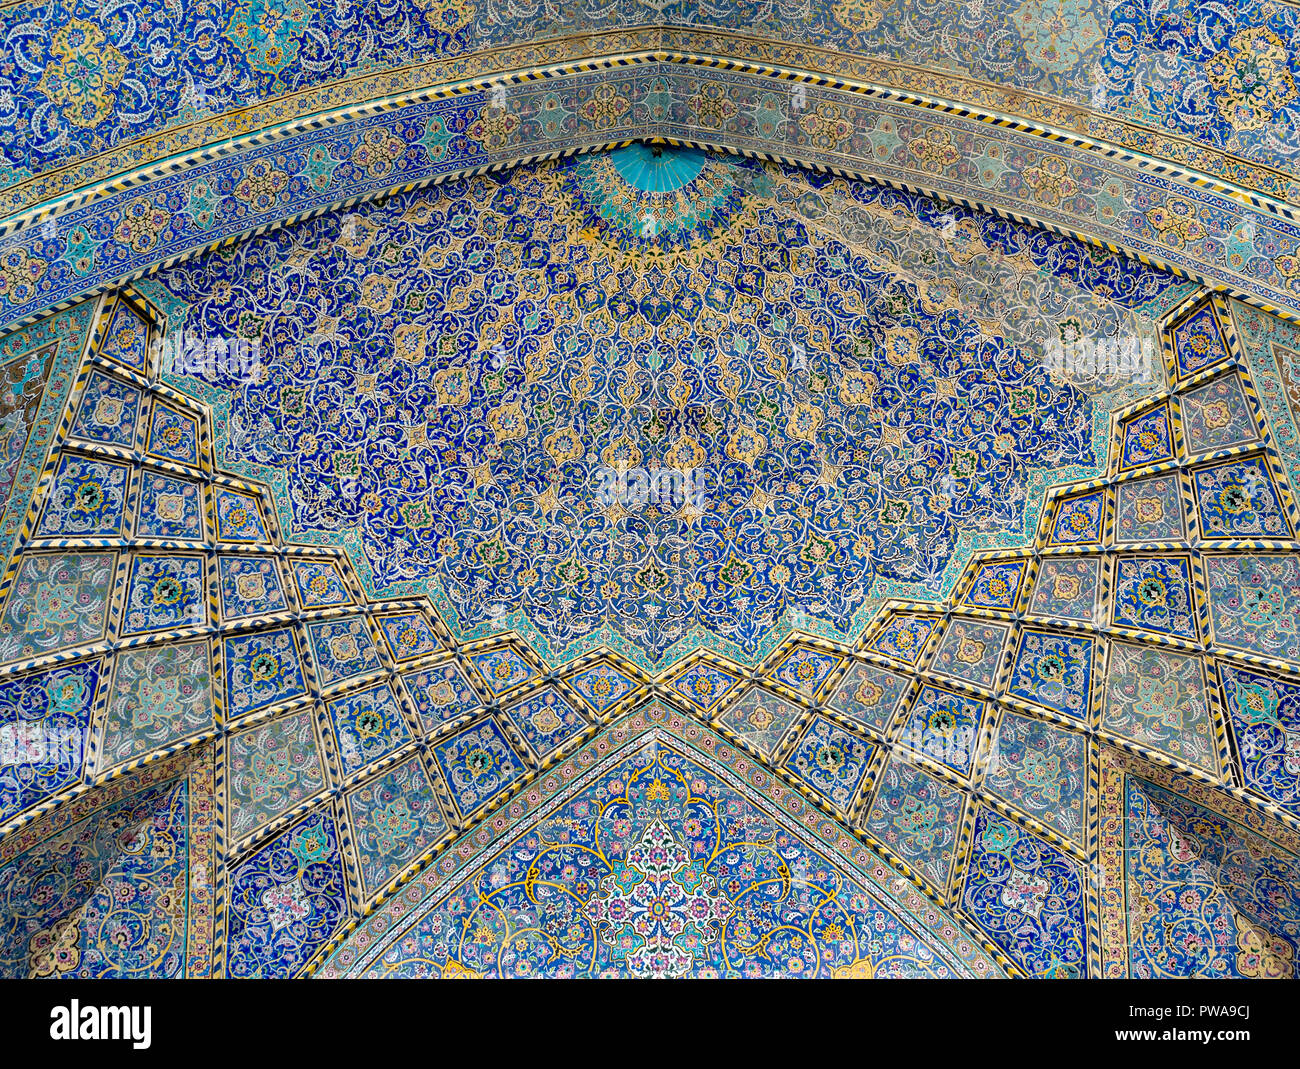 Tile decorated dome at Seyyed mosque, Isfahan, Iran - Stock Image